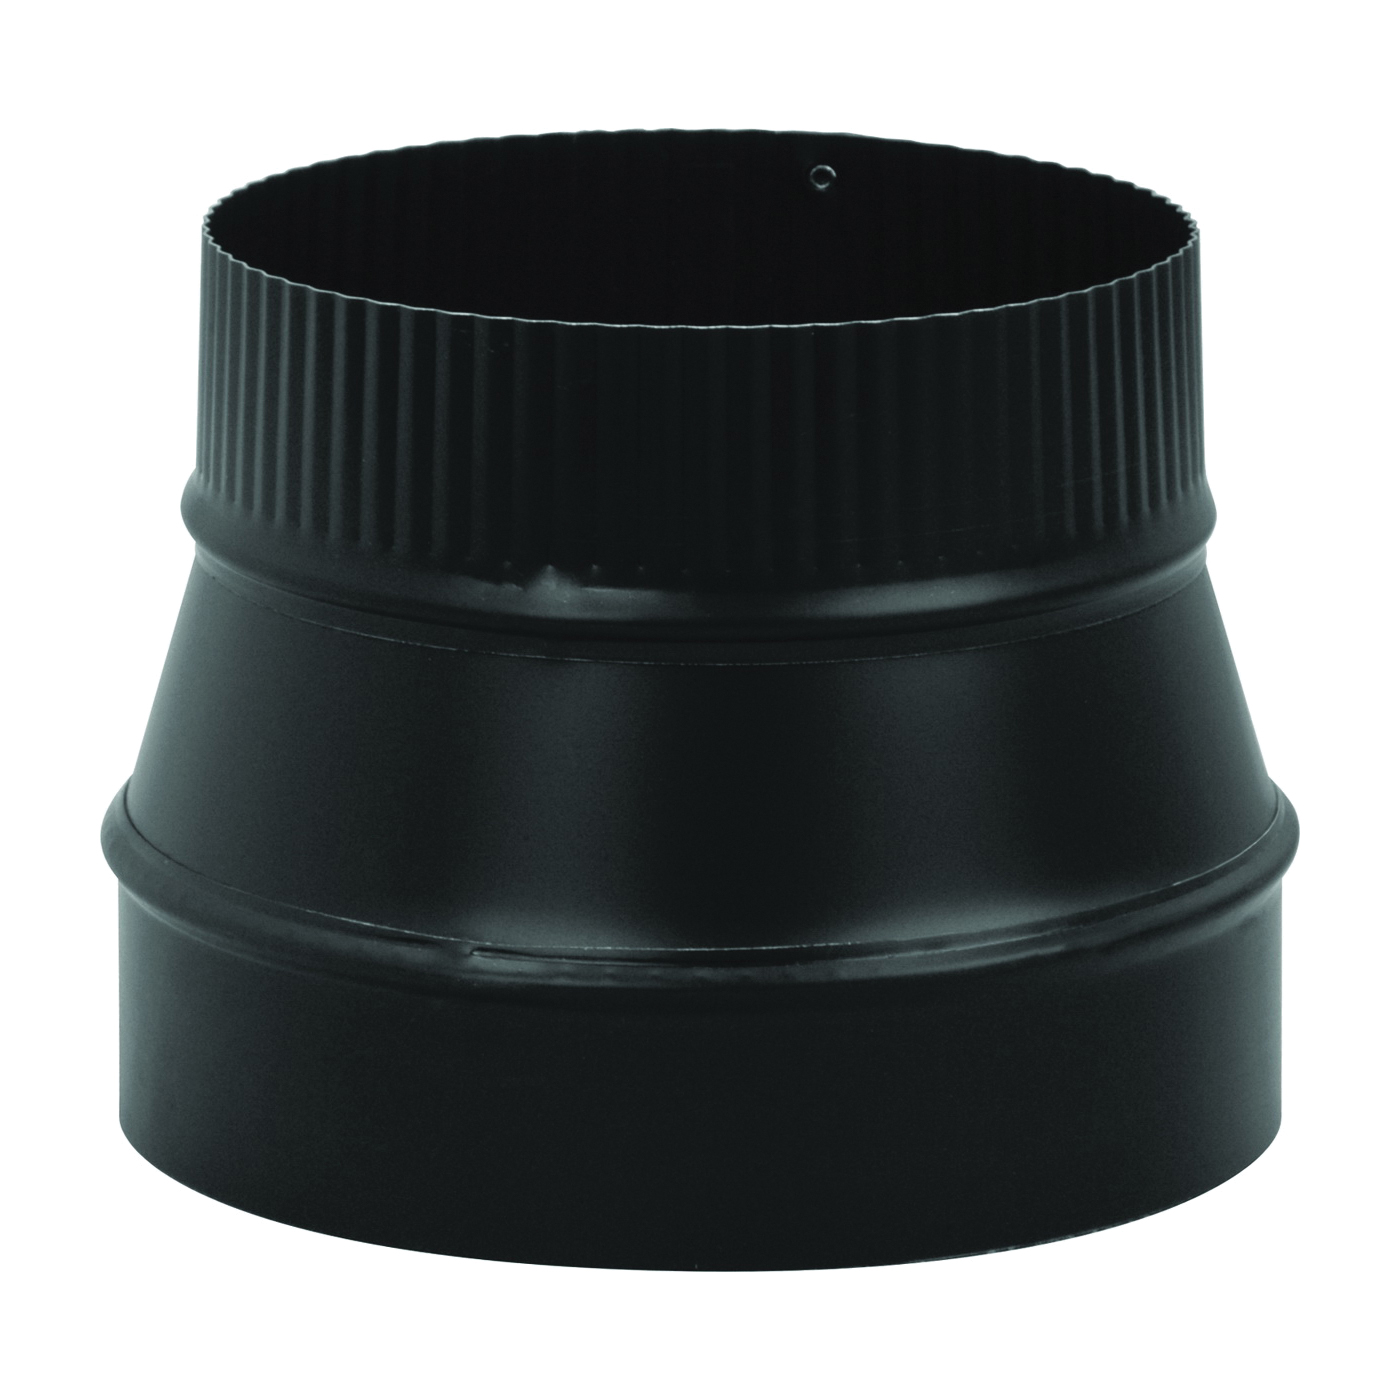 Picture of Imperial BM0075 Stove Pipe Reducer, 6 x 5 in, Crimp, 24 ga Thick Wall, Black, Matte